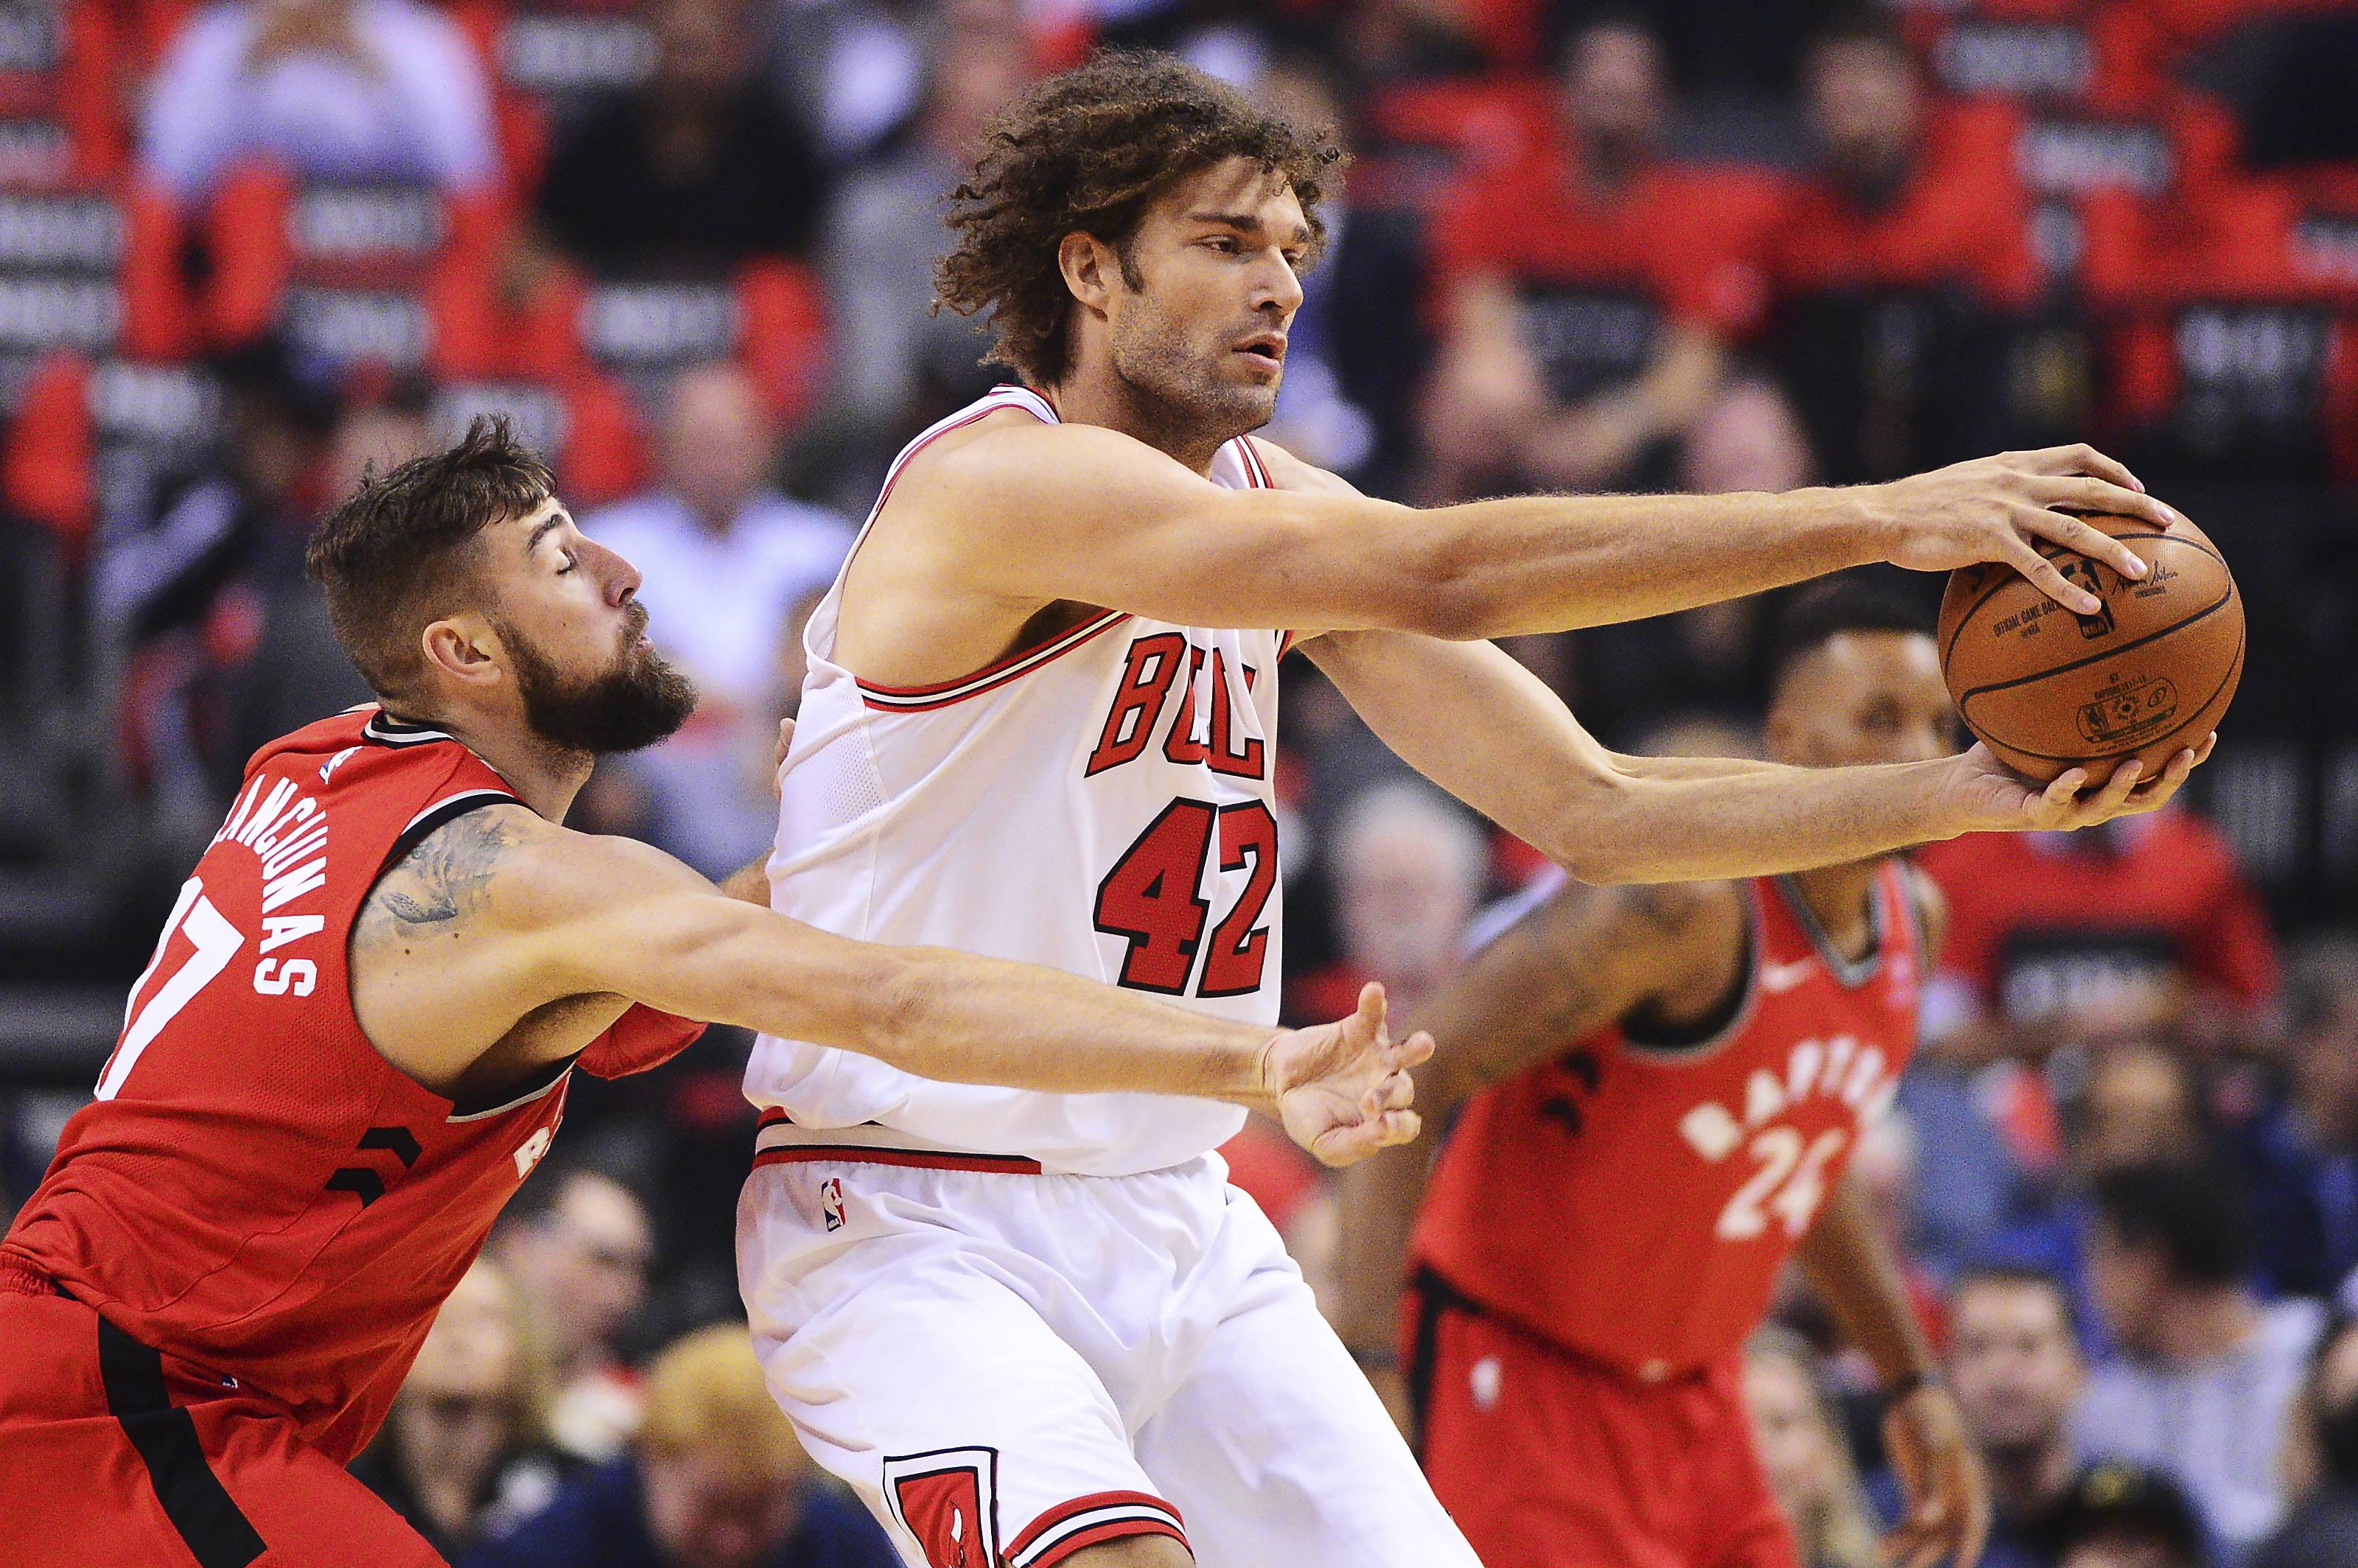 Chicago Bulls center Robin Lopez protects the ball from Toronto Raptors center Jonas Valanciunas during the first half of the game Thursday in Toronto.